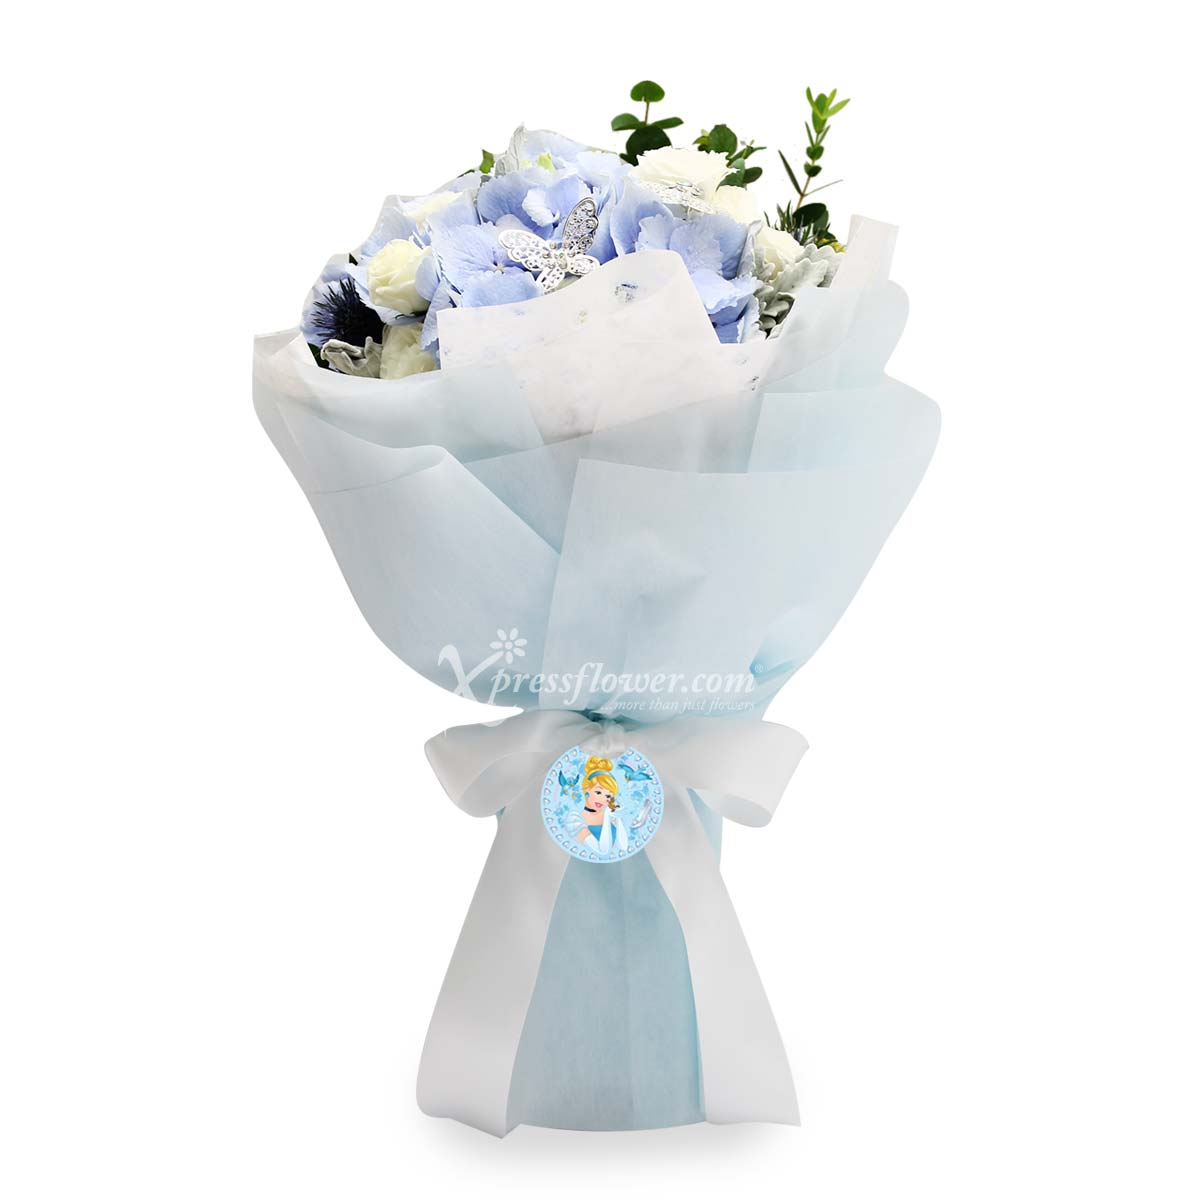 DSBQ1801 The perfect fit bouquet